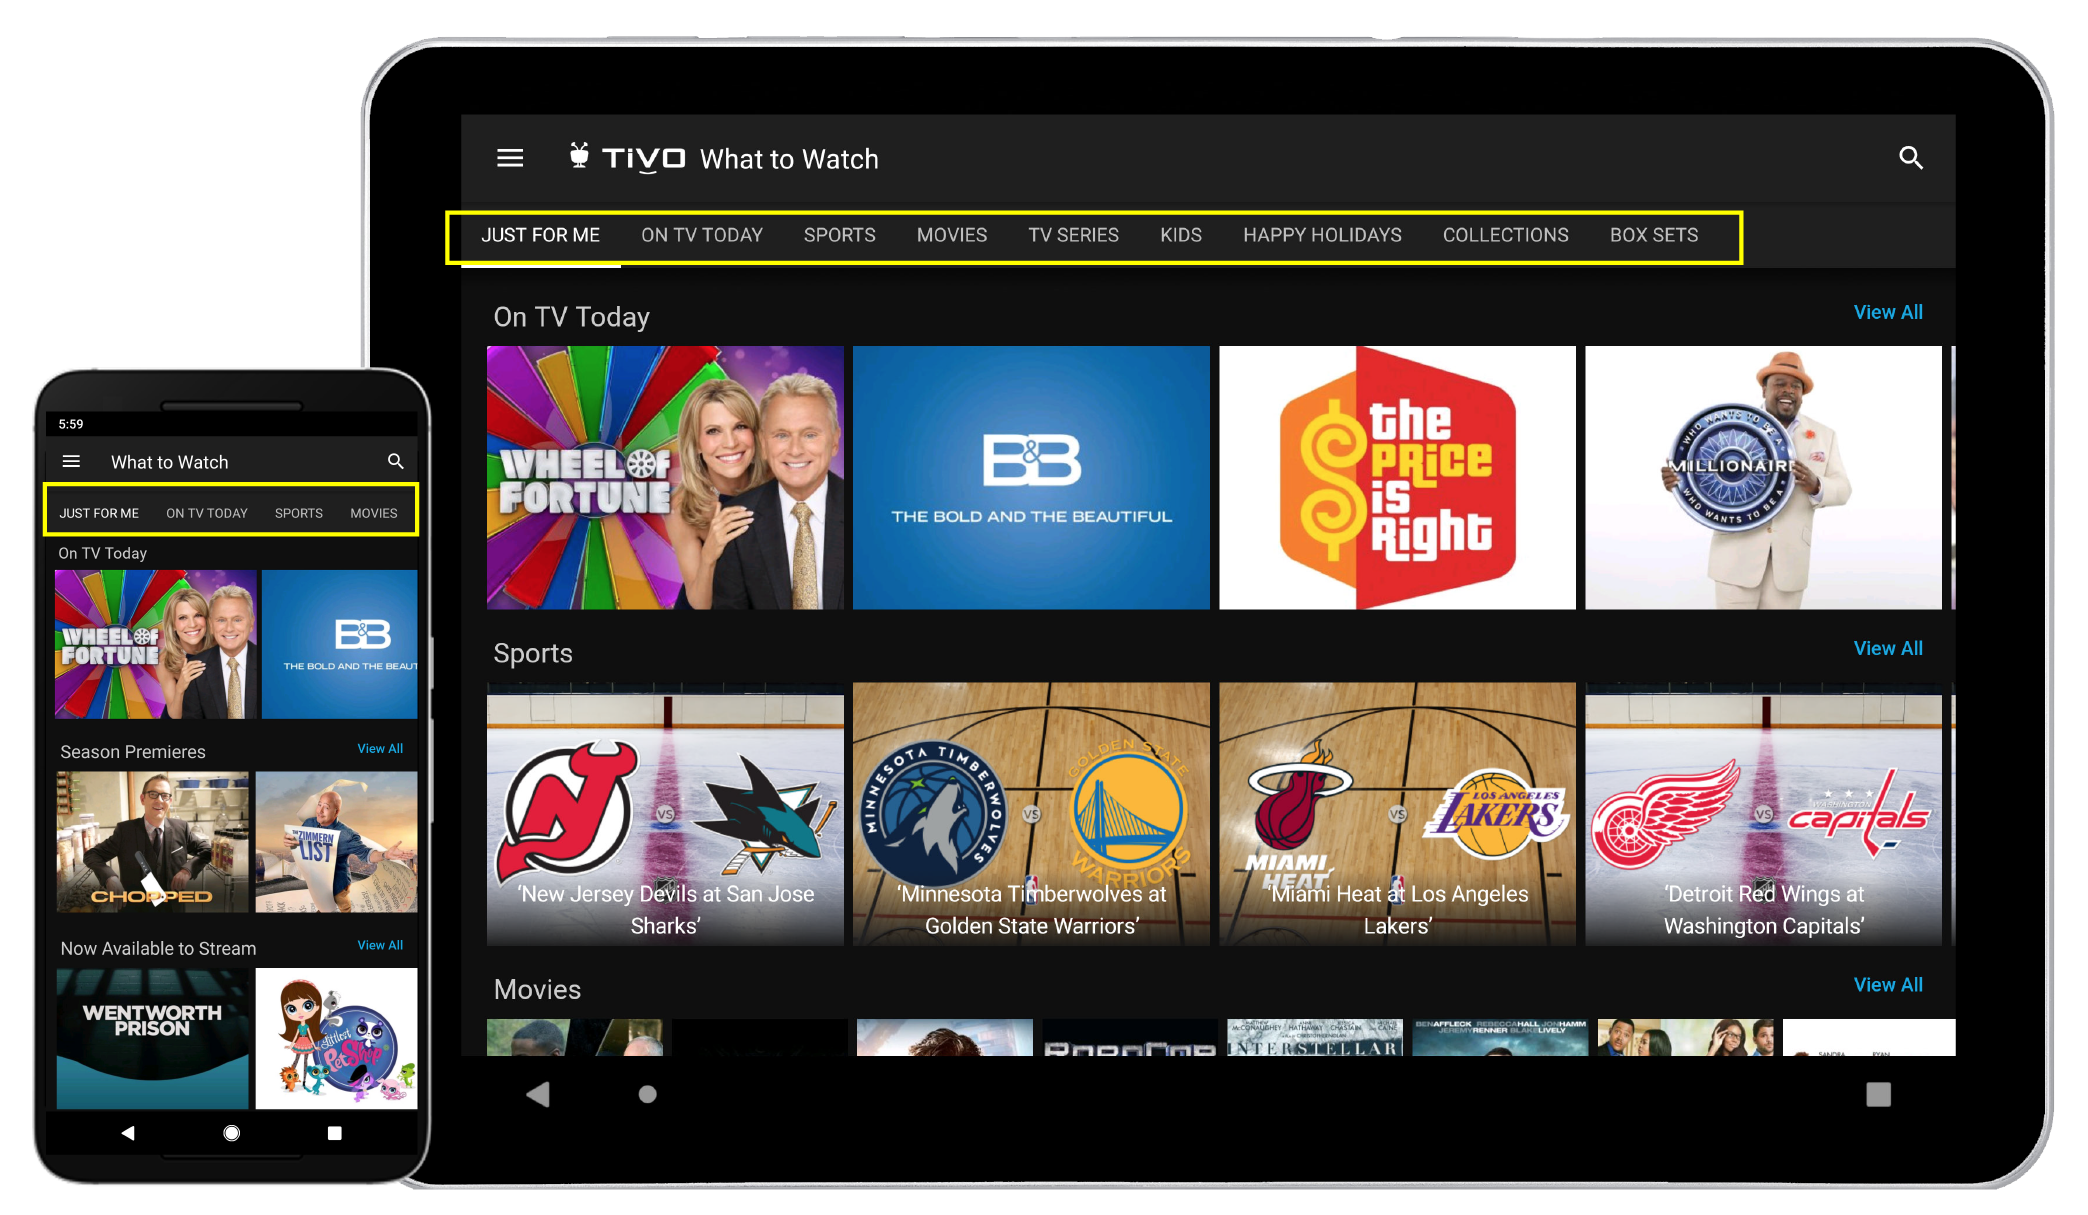 tivo-app-what-to-watch